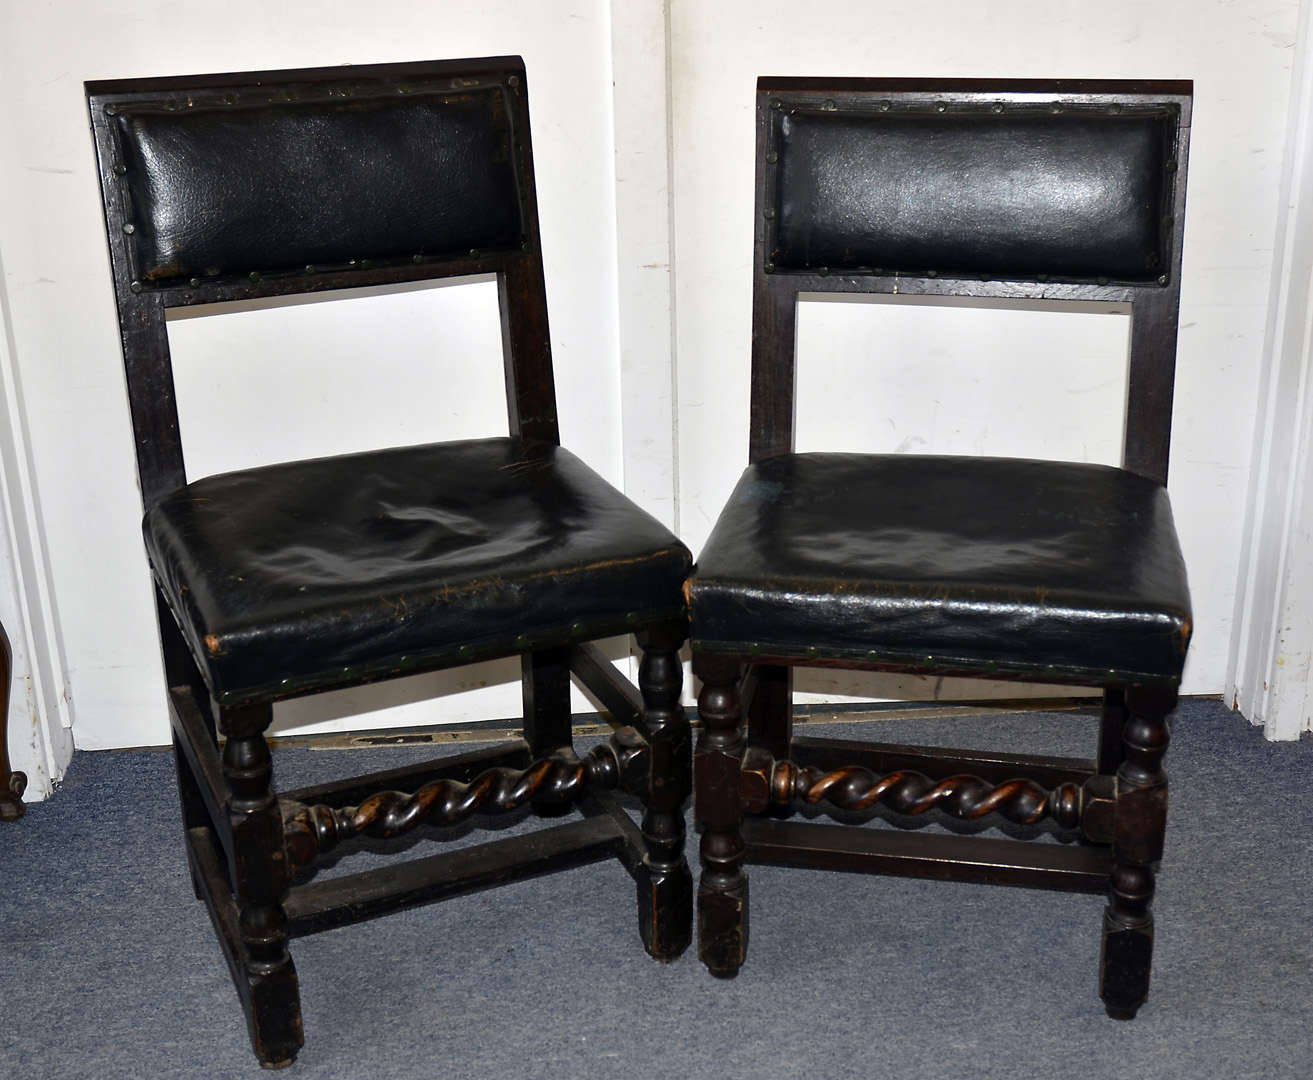 Lot 305 - Of Winston Churchill interest, A set of four dining chairs used by Churchill and General Dwight